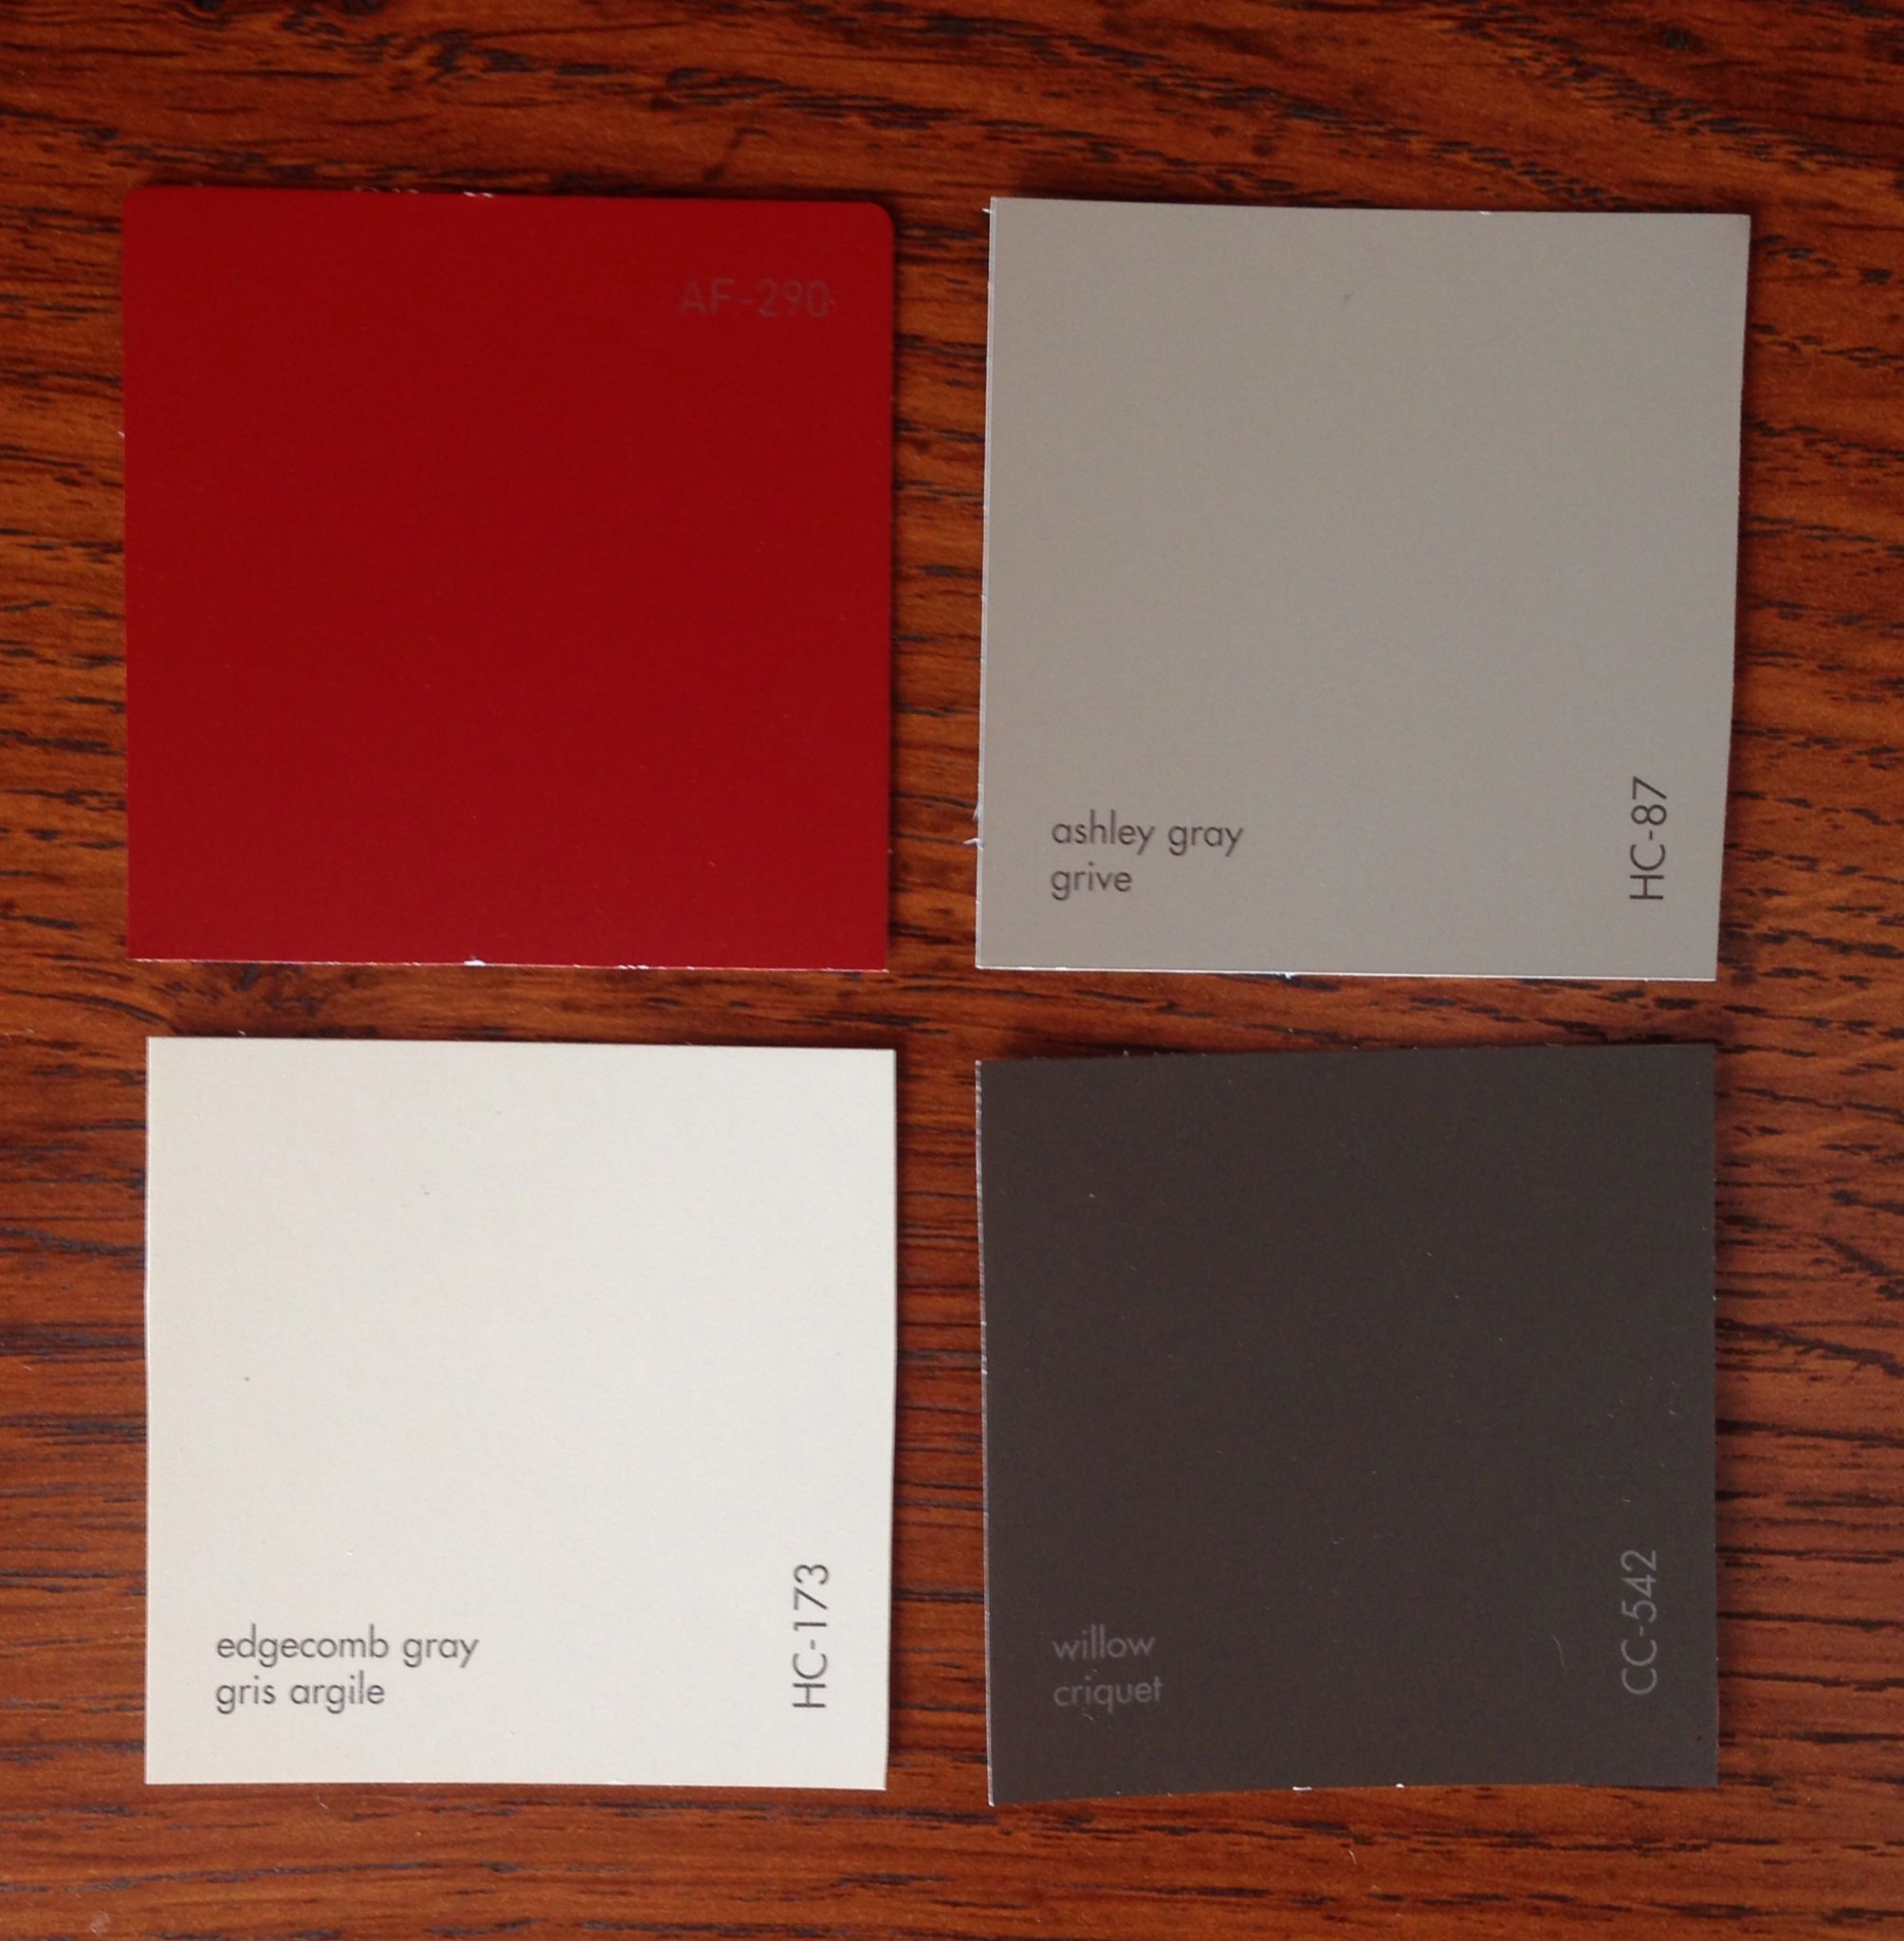 Benjamin moore front door paint colors - Romantic Winter Colour Scheme Af 290 Caliente Hc 87 Ashley Gray